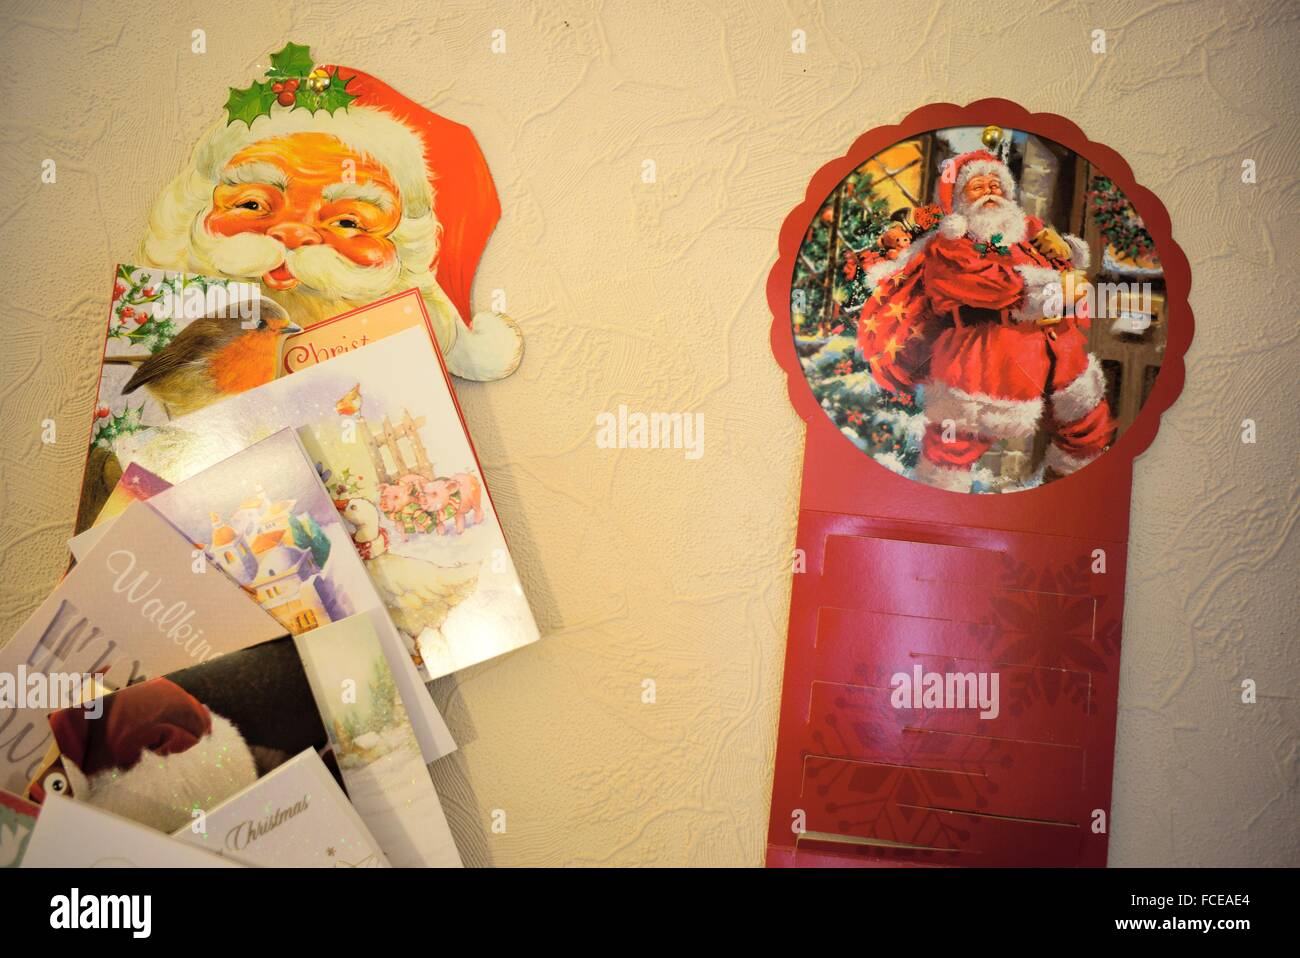 Magnificent Santa Claus Wall Art Image Collection - Art & Wall Decor ...